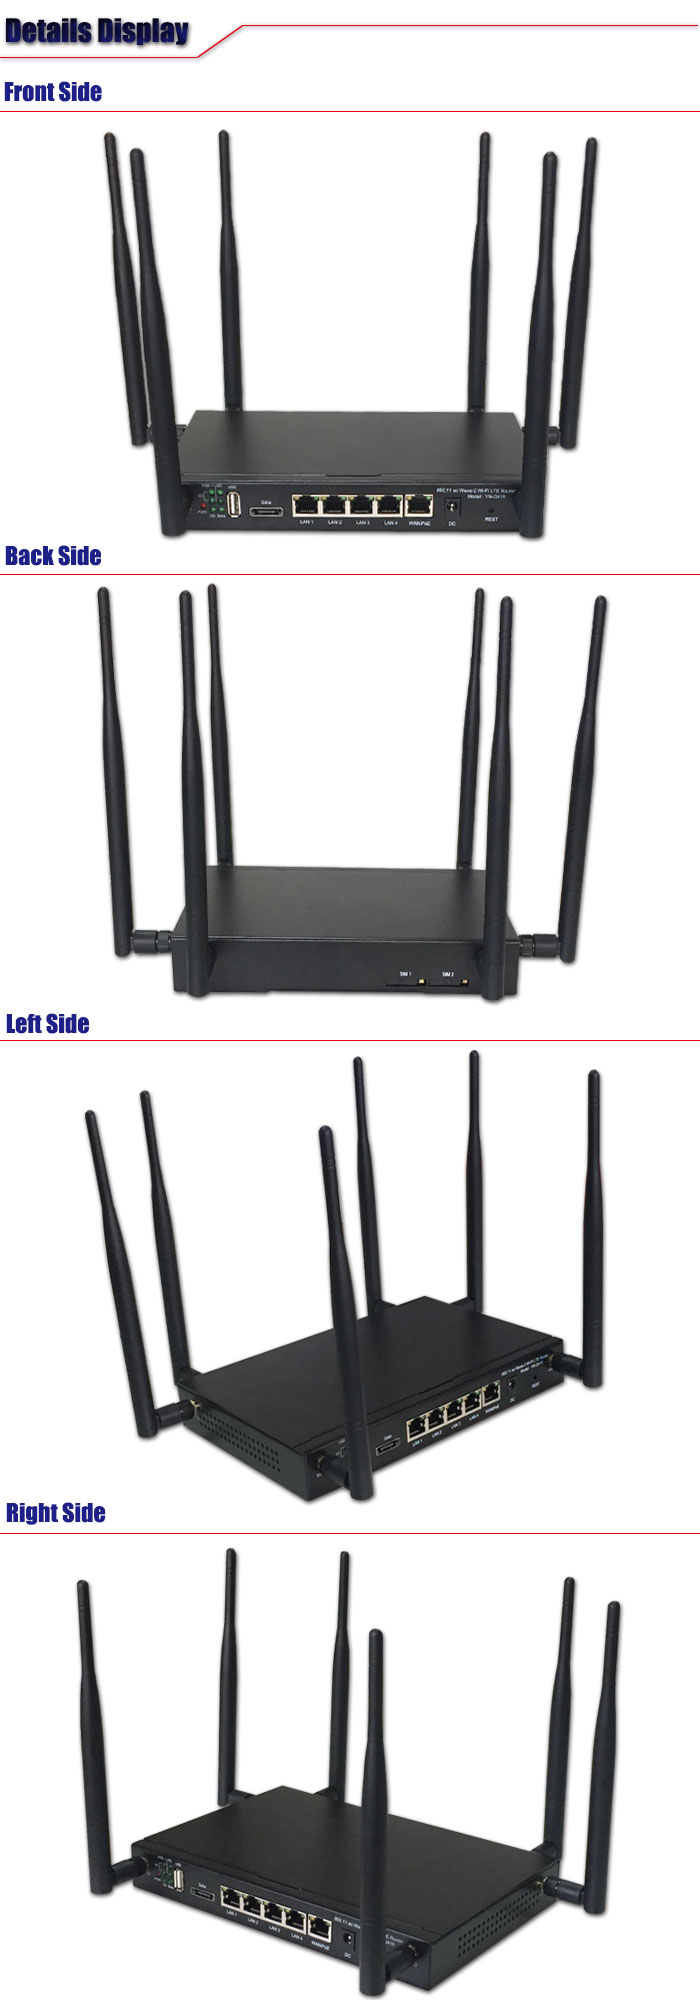 802.11ac Dual Band 3g 4g Sim Card Openwrt Slot Wifi Router